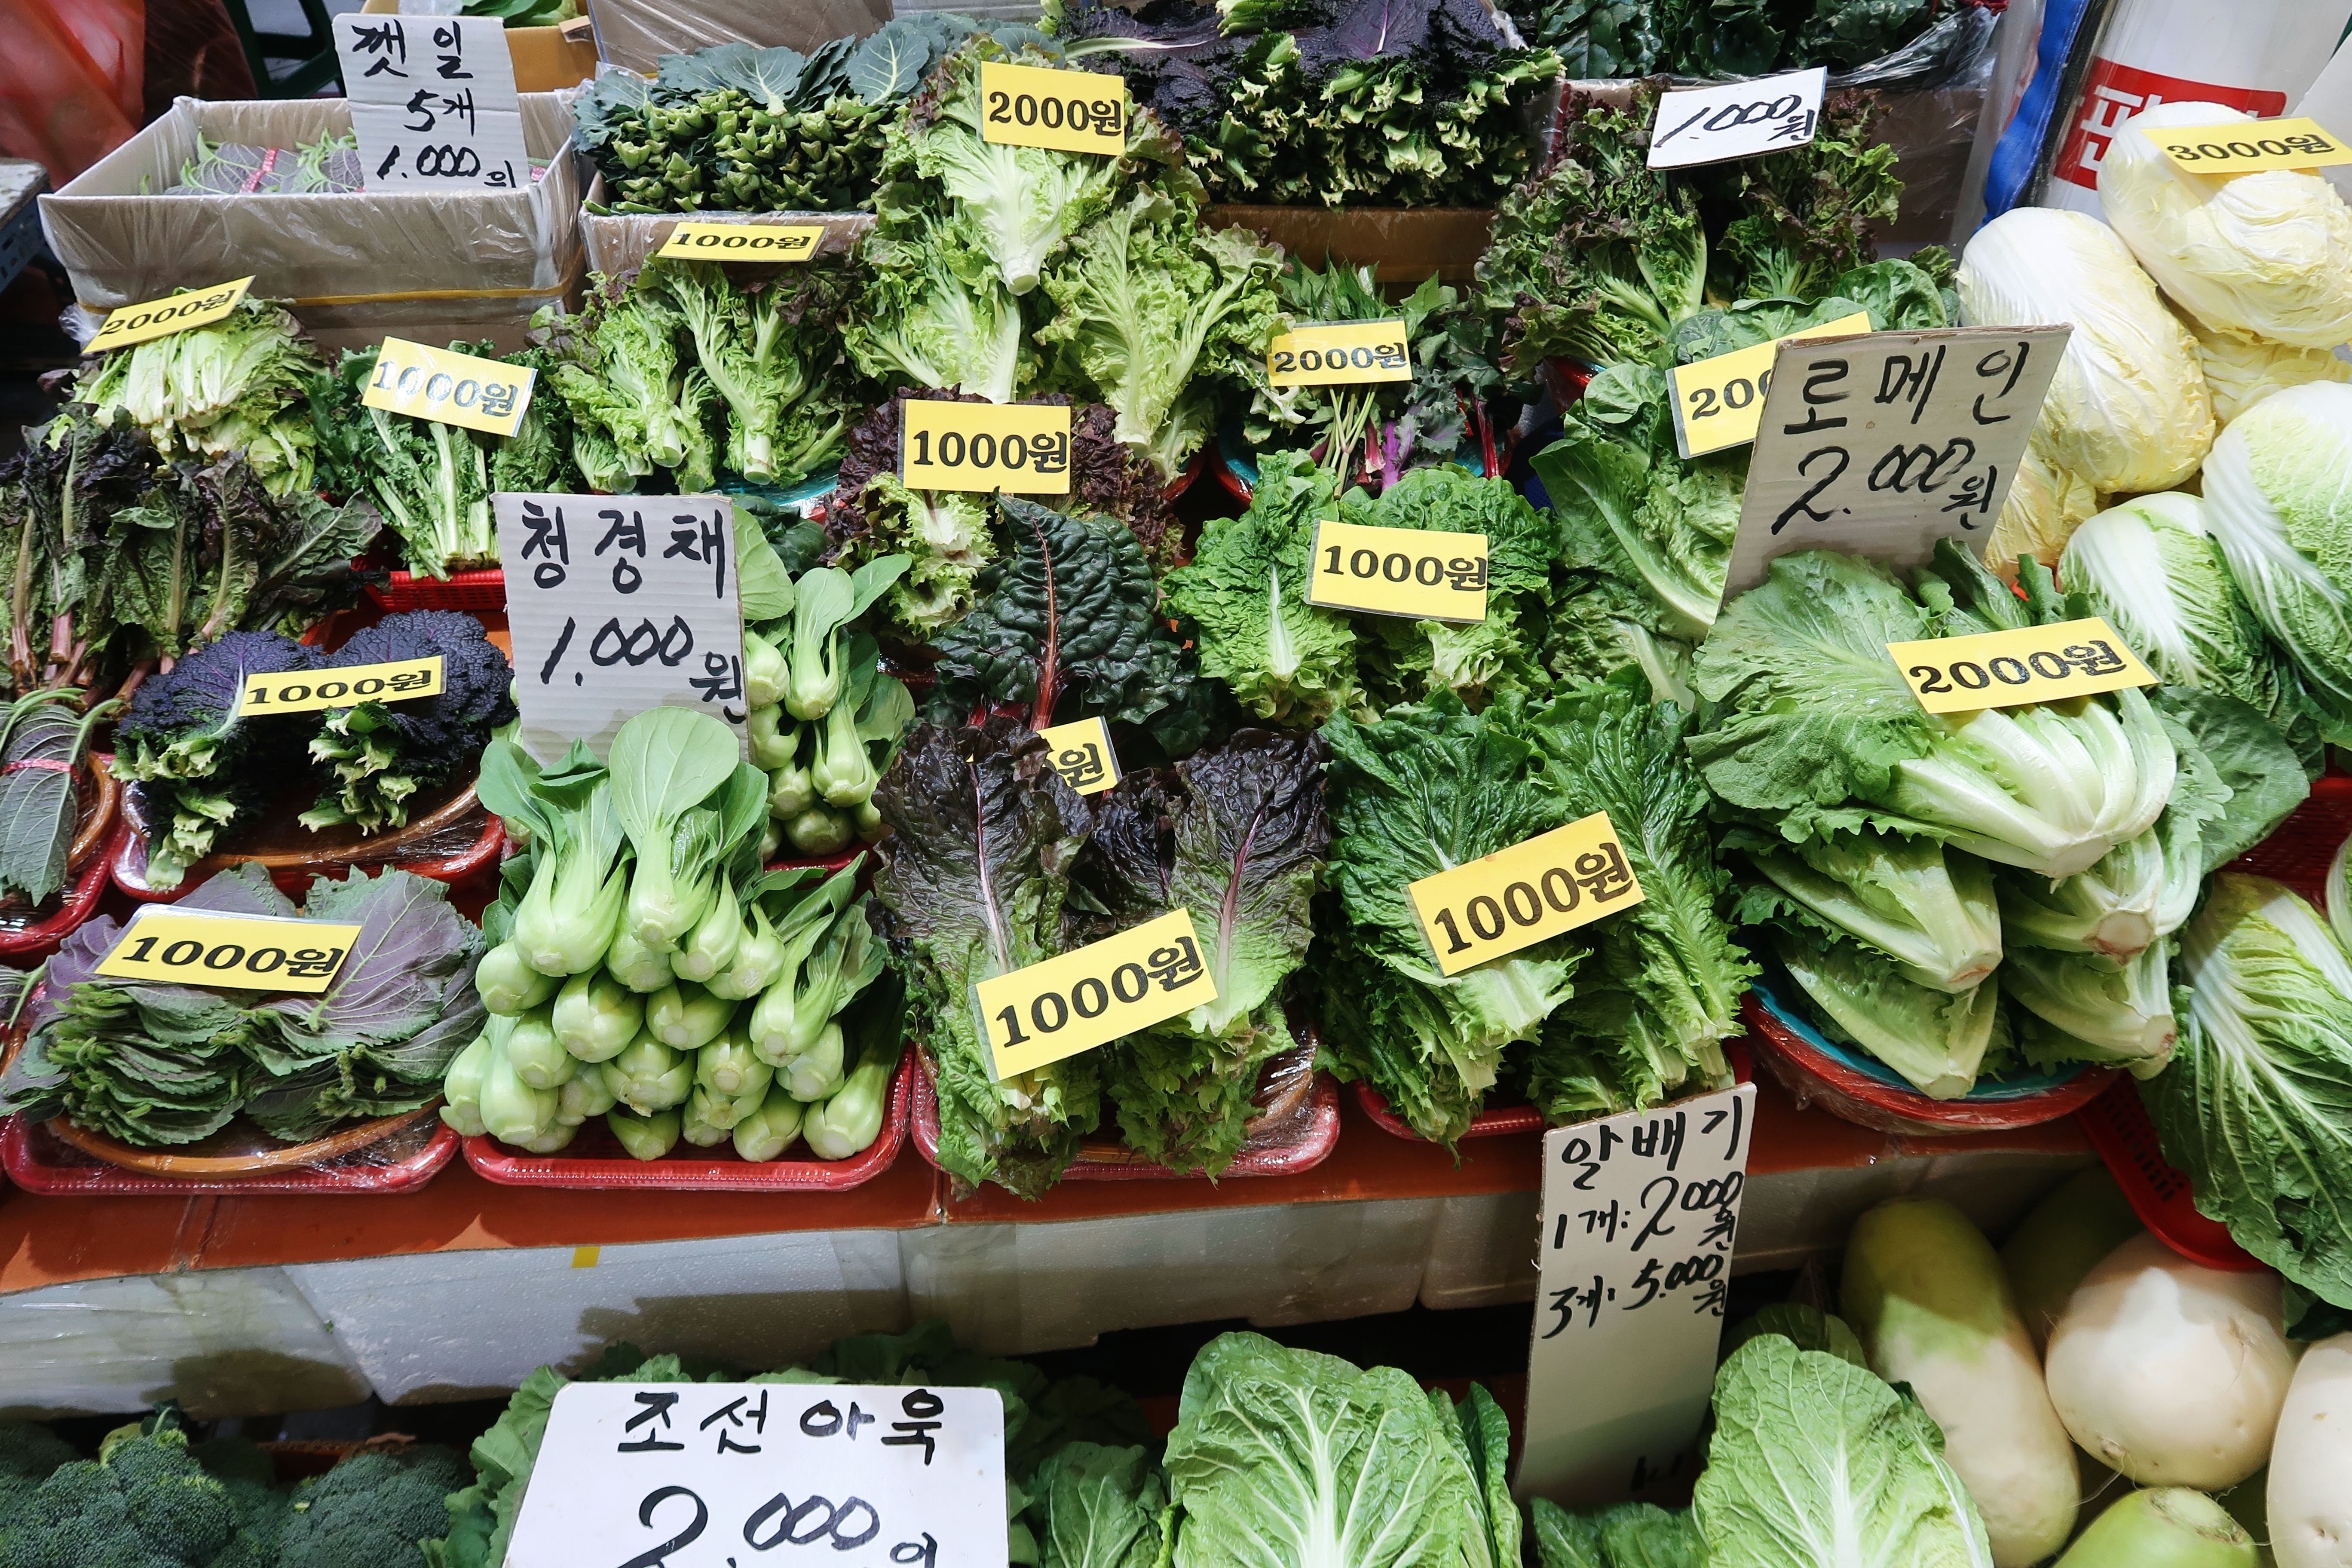 A stall in the traditional market selling a multitude of greens